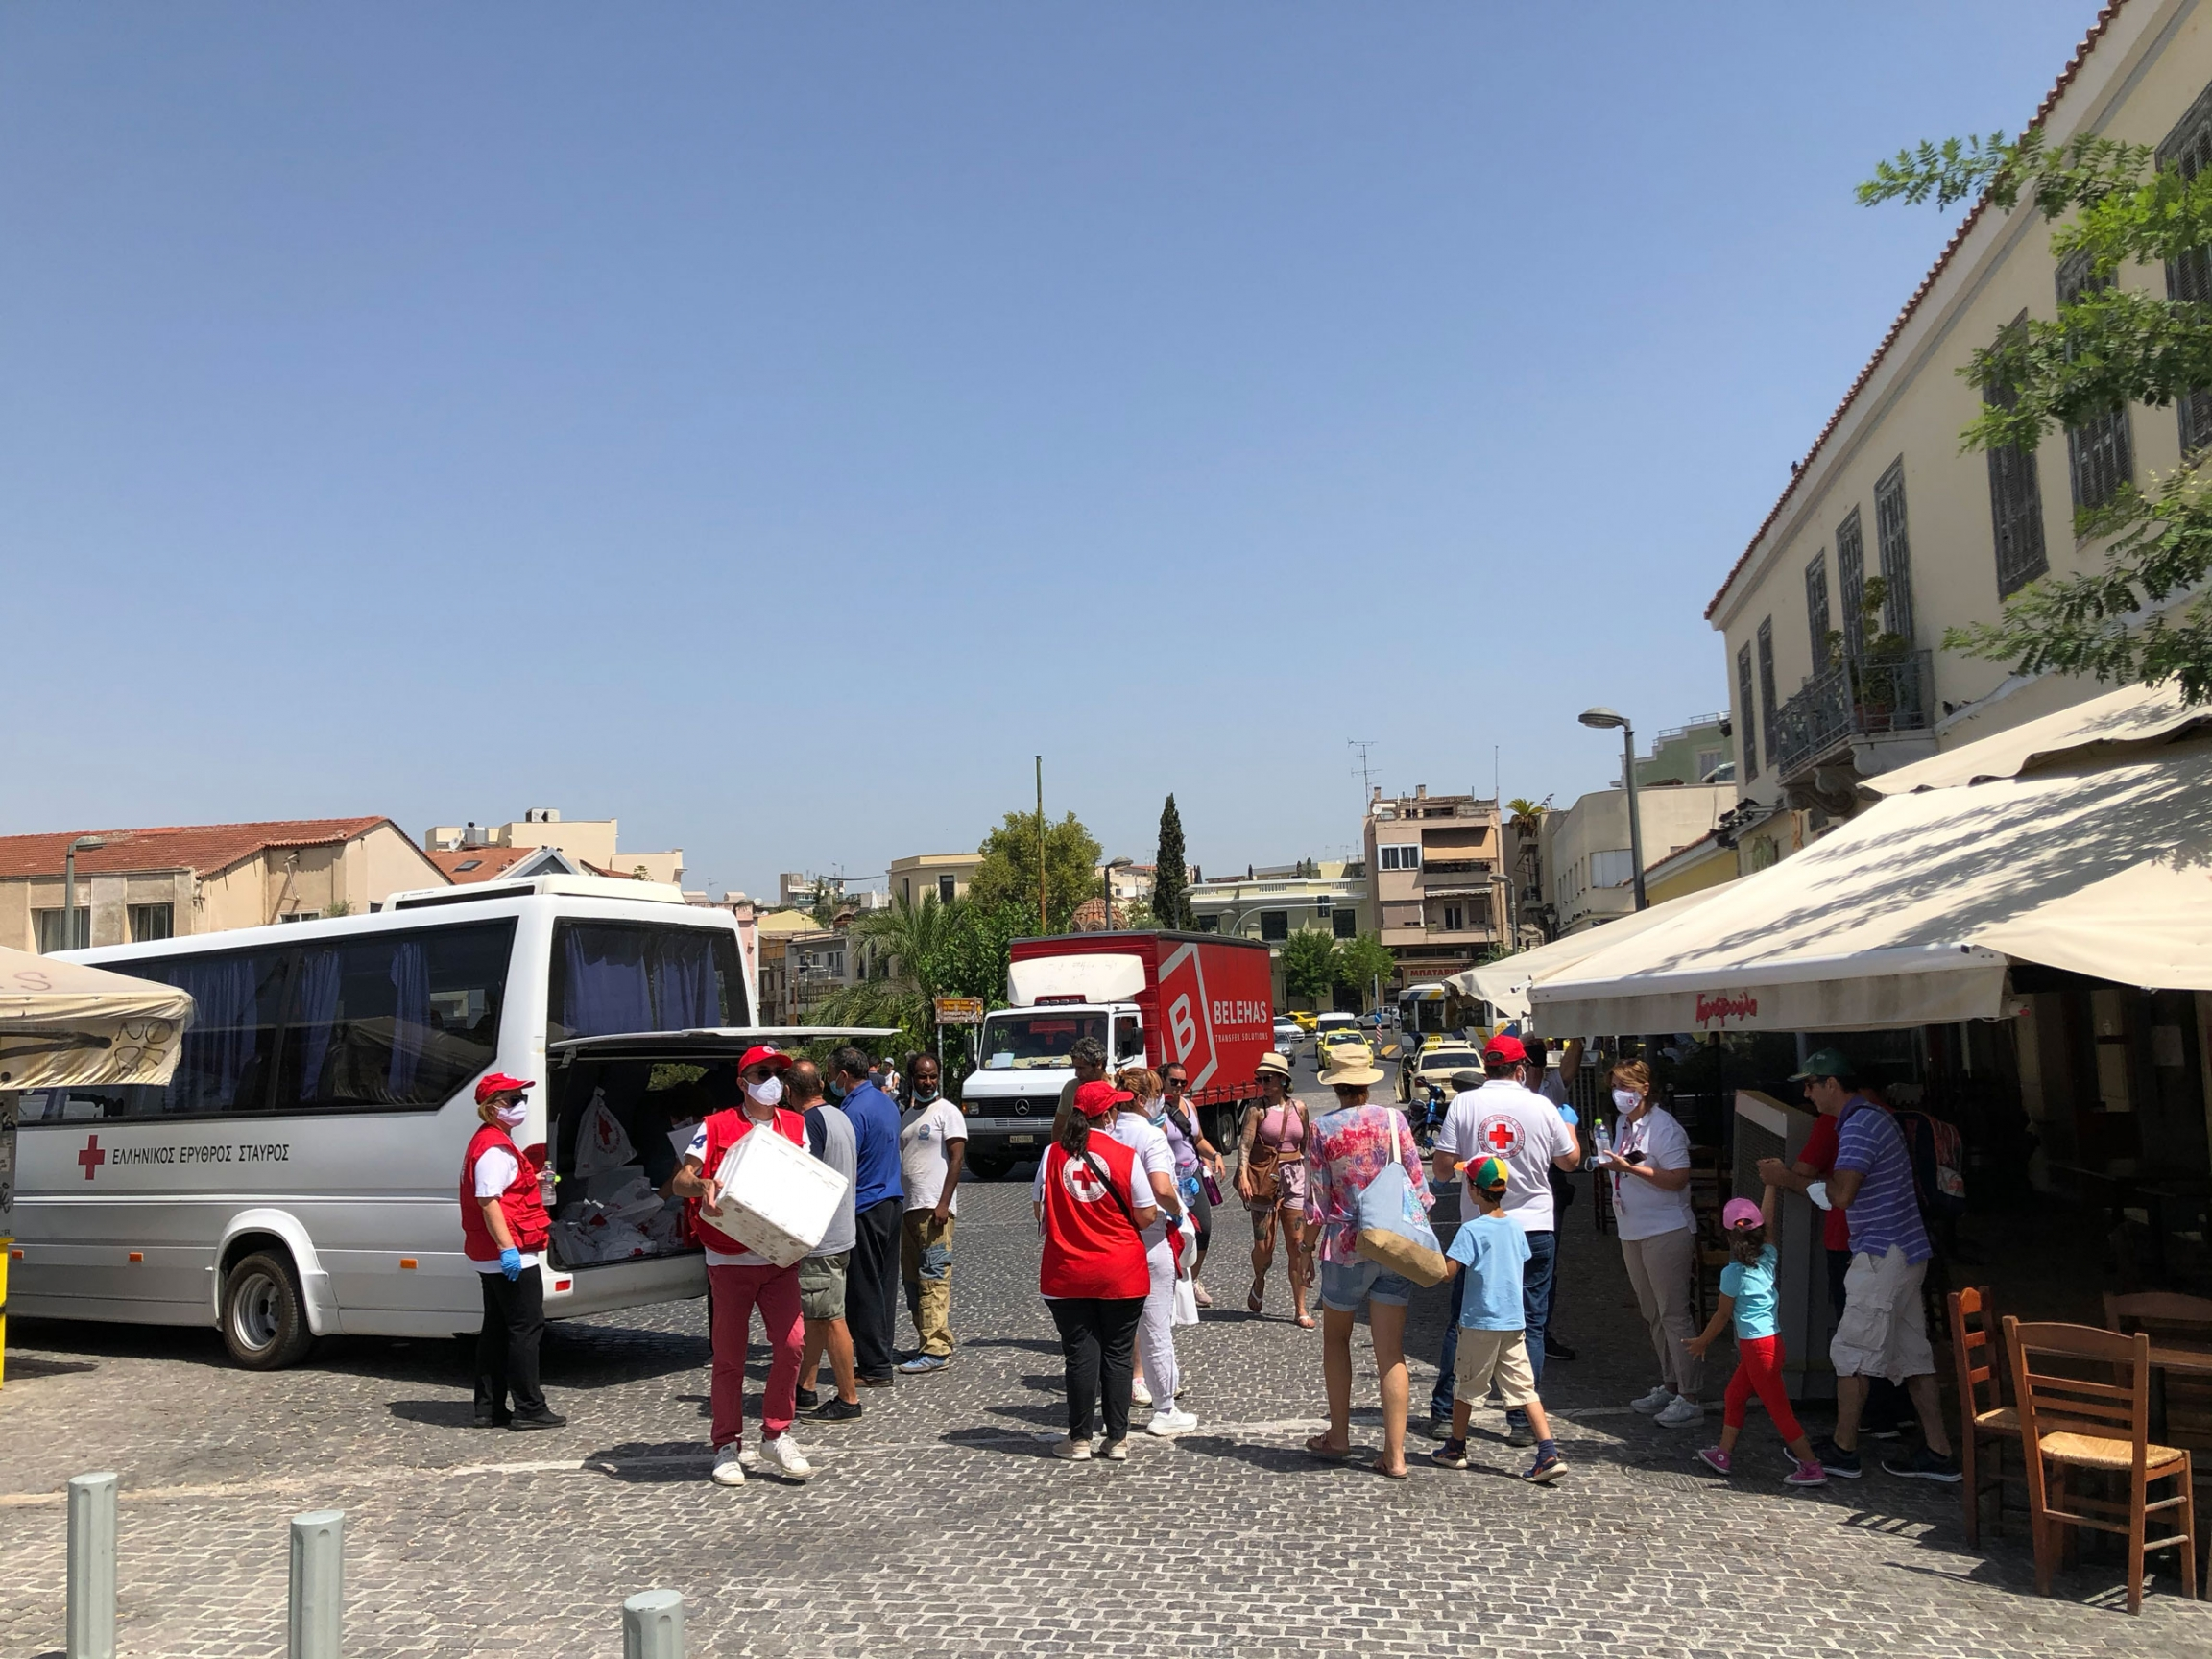 A white van with a red cross on it is shown with the back doors open and several people outside handing out water.